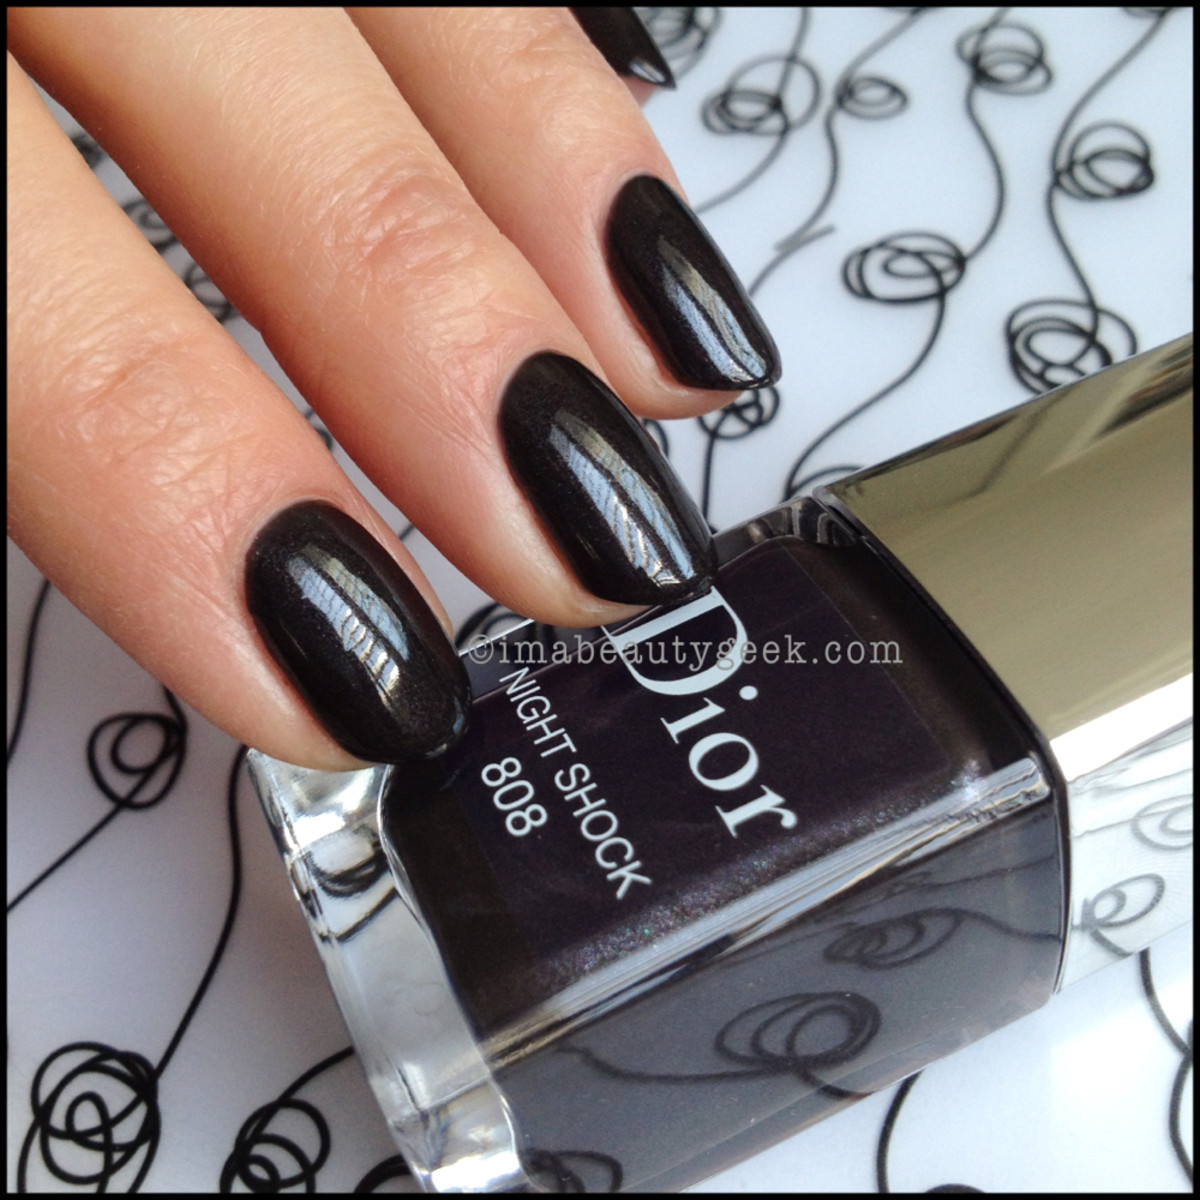 Dior Vernis Night Shock 808